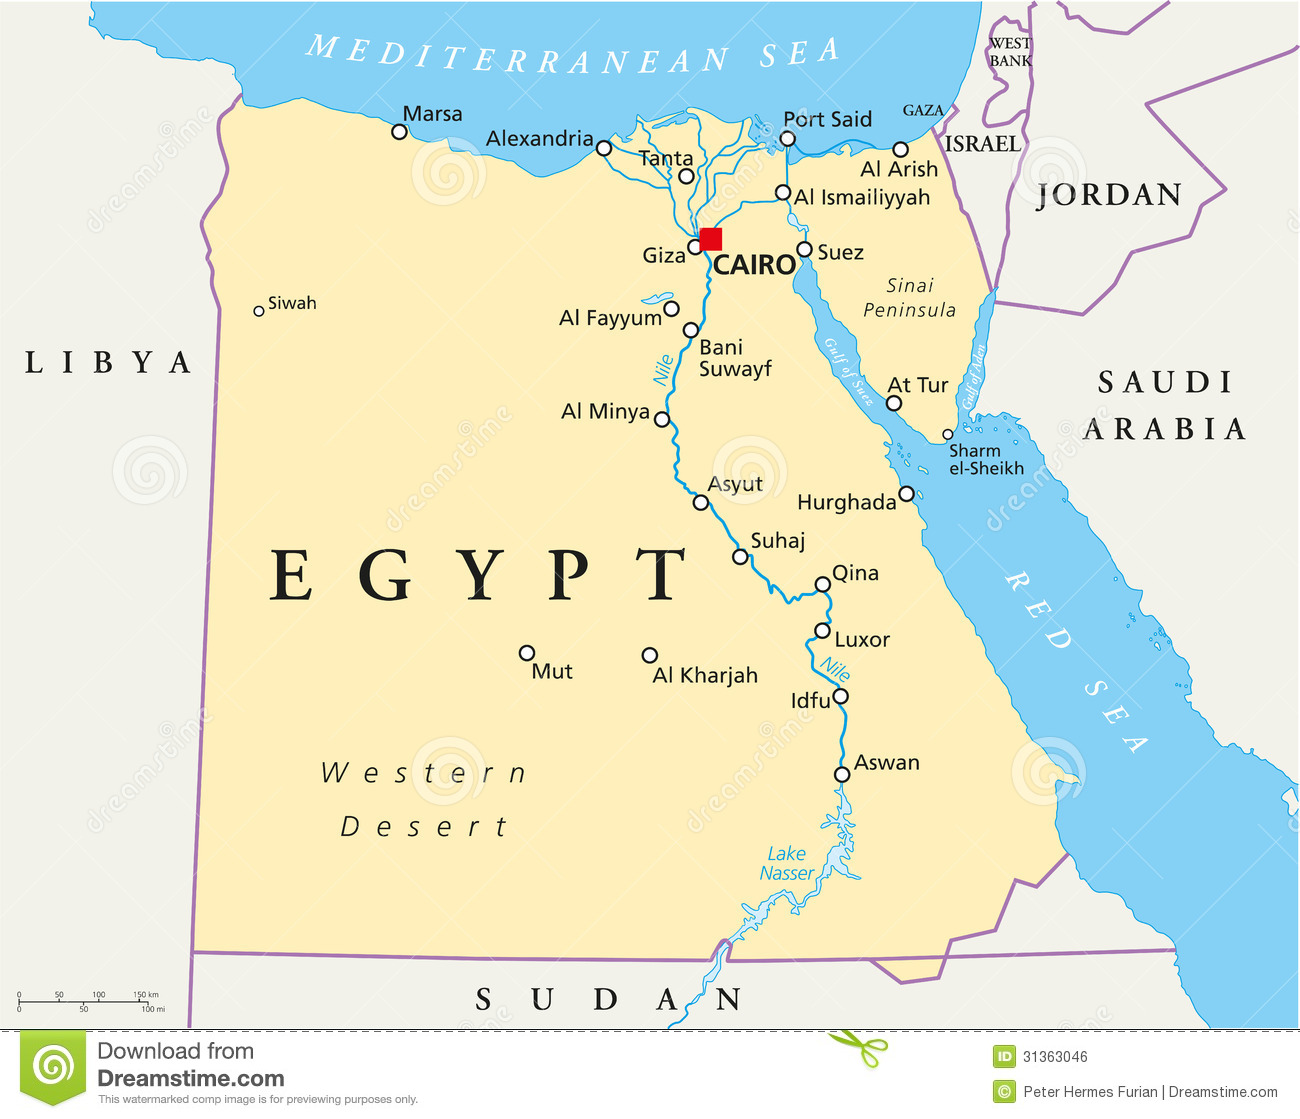 This Is A Map On Egypt This Is Another Map On Egypt Thi - Map of egypt hd